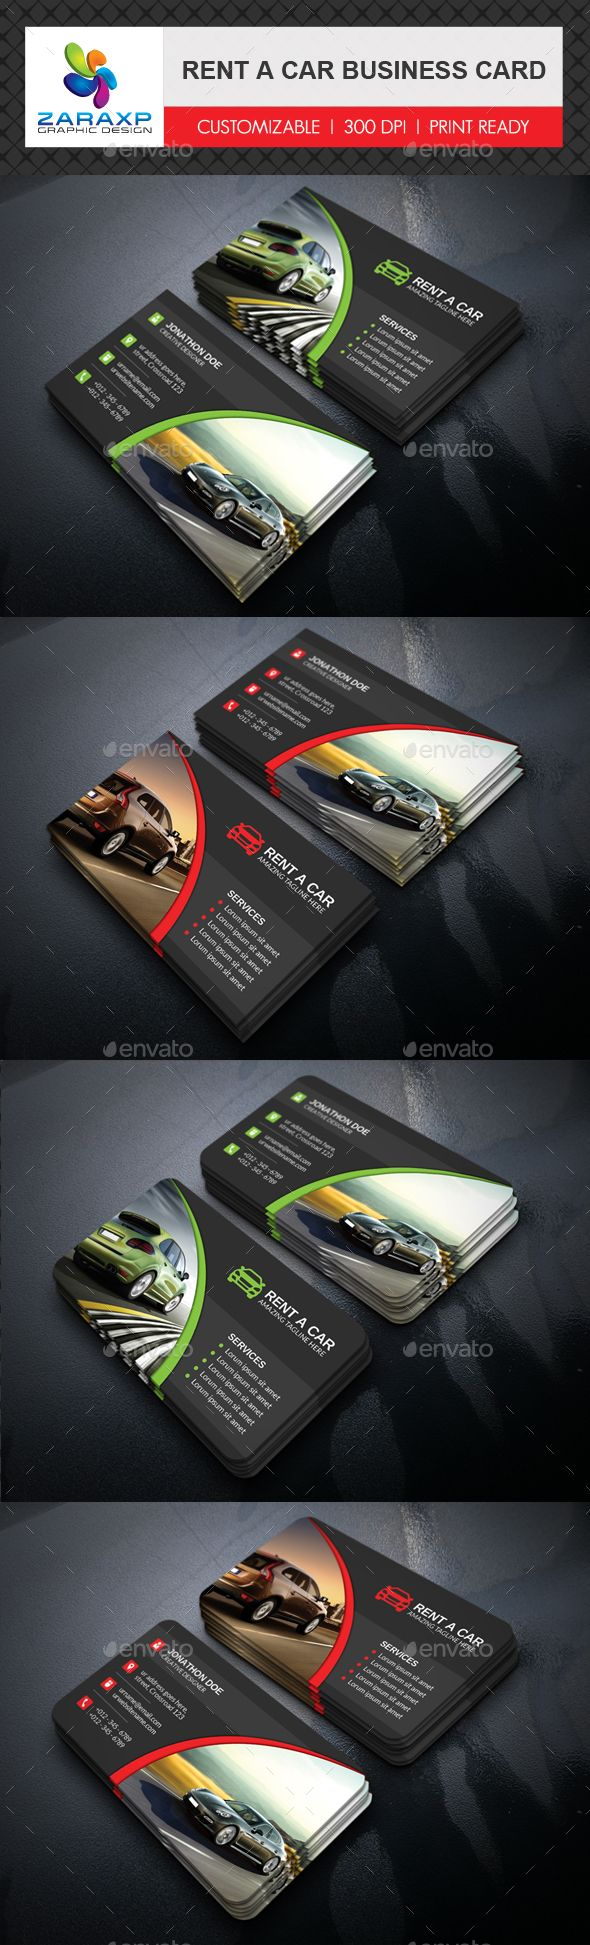 Rent A Car Business Card Template PSD #visitcard #design Download: http://graphicriver.net/item/rent-a-car-business-card/13495756?ref=ksioks